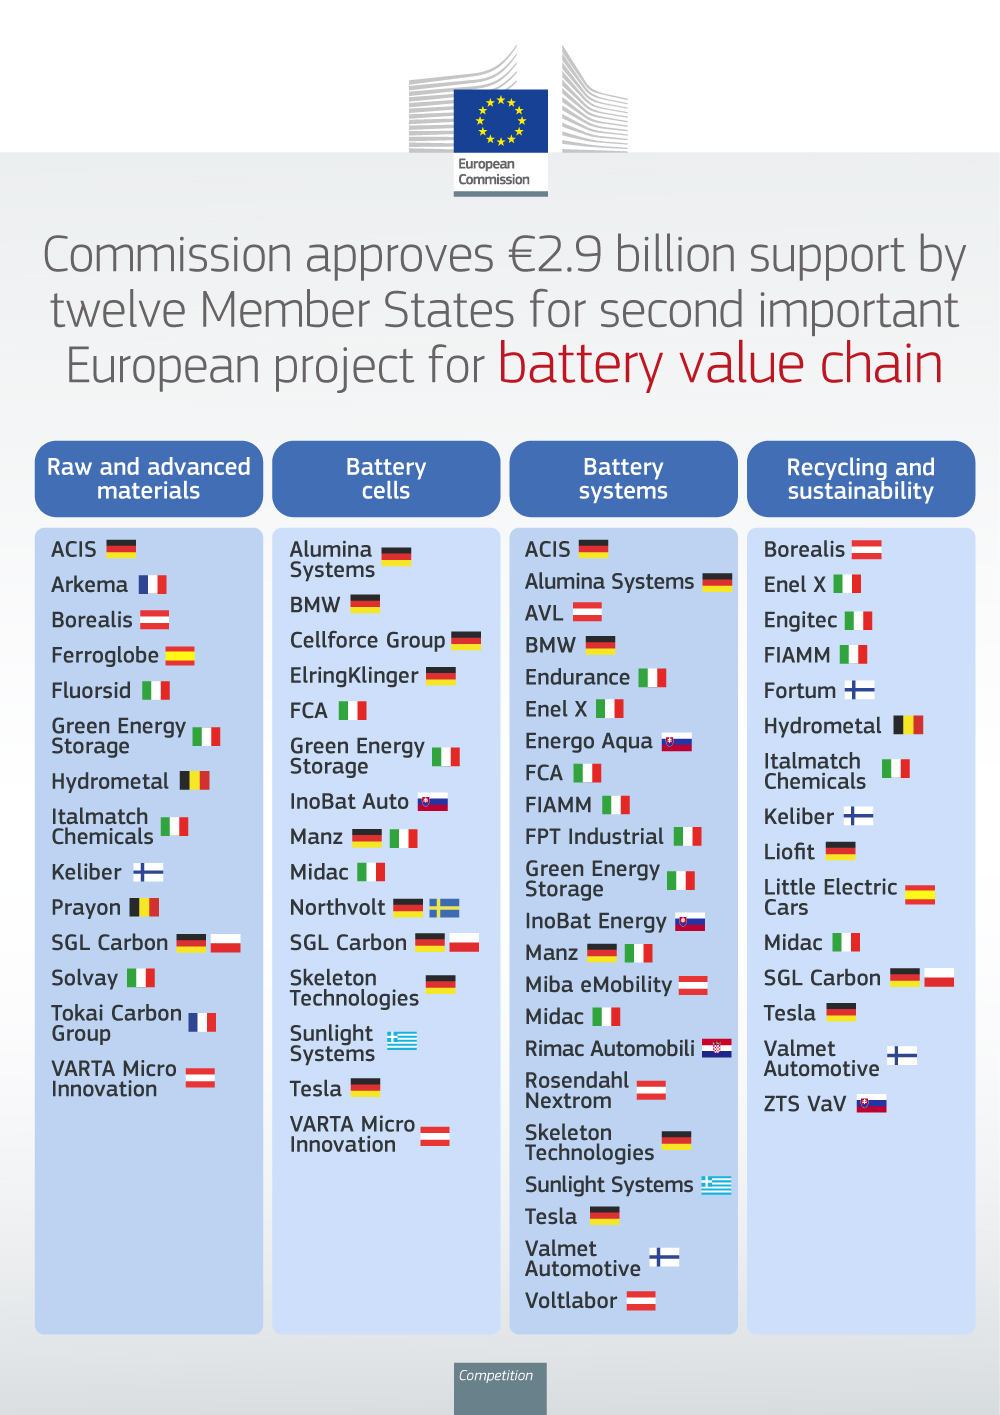 Commission approves €2.9 billion public support by twelve Member States for a second pan-European research and innovation project along the entire battery value chain